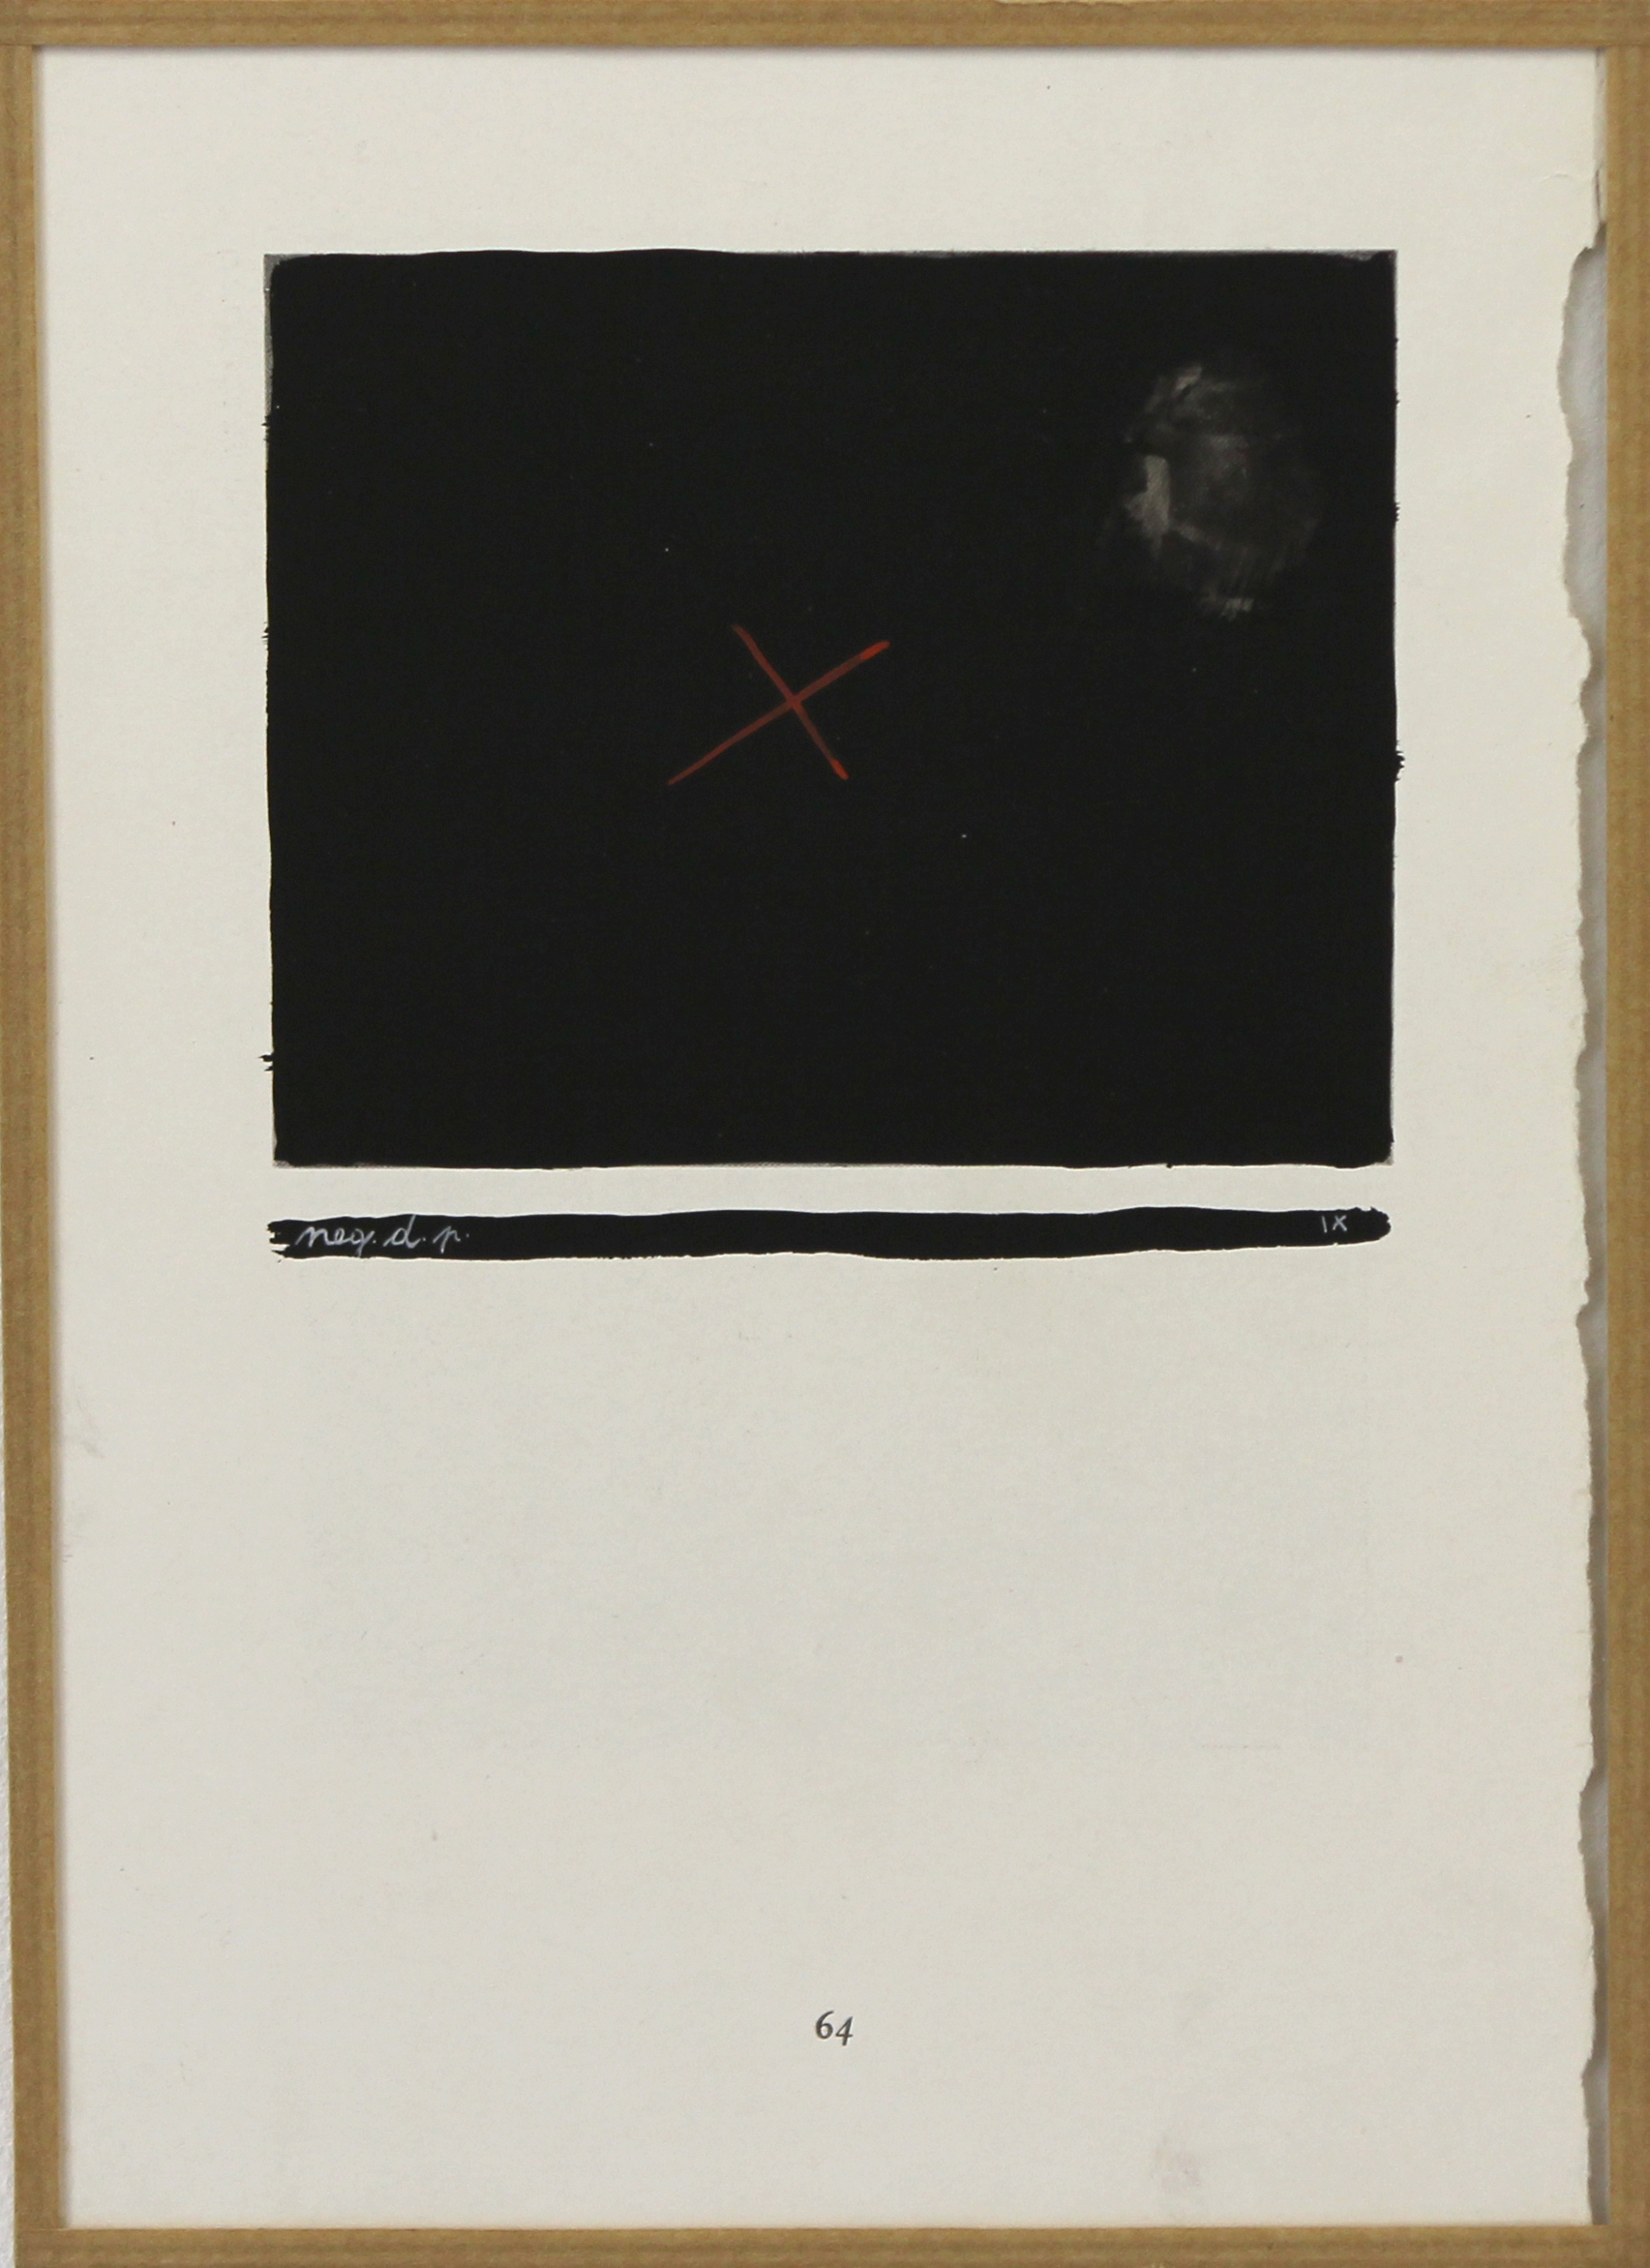 Negation de la peinture ix, m-5, tempera on printed paper, 23.7 x 16.7cm, 1951-1956